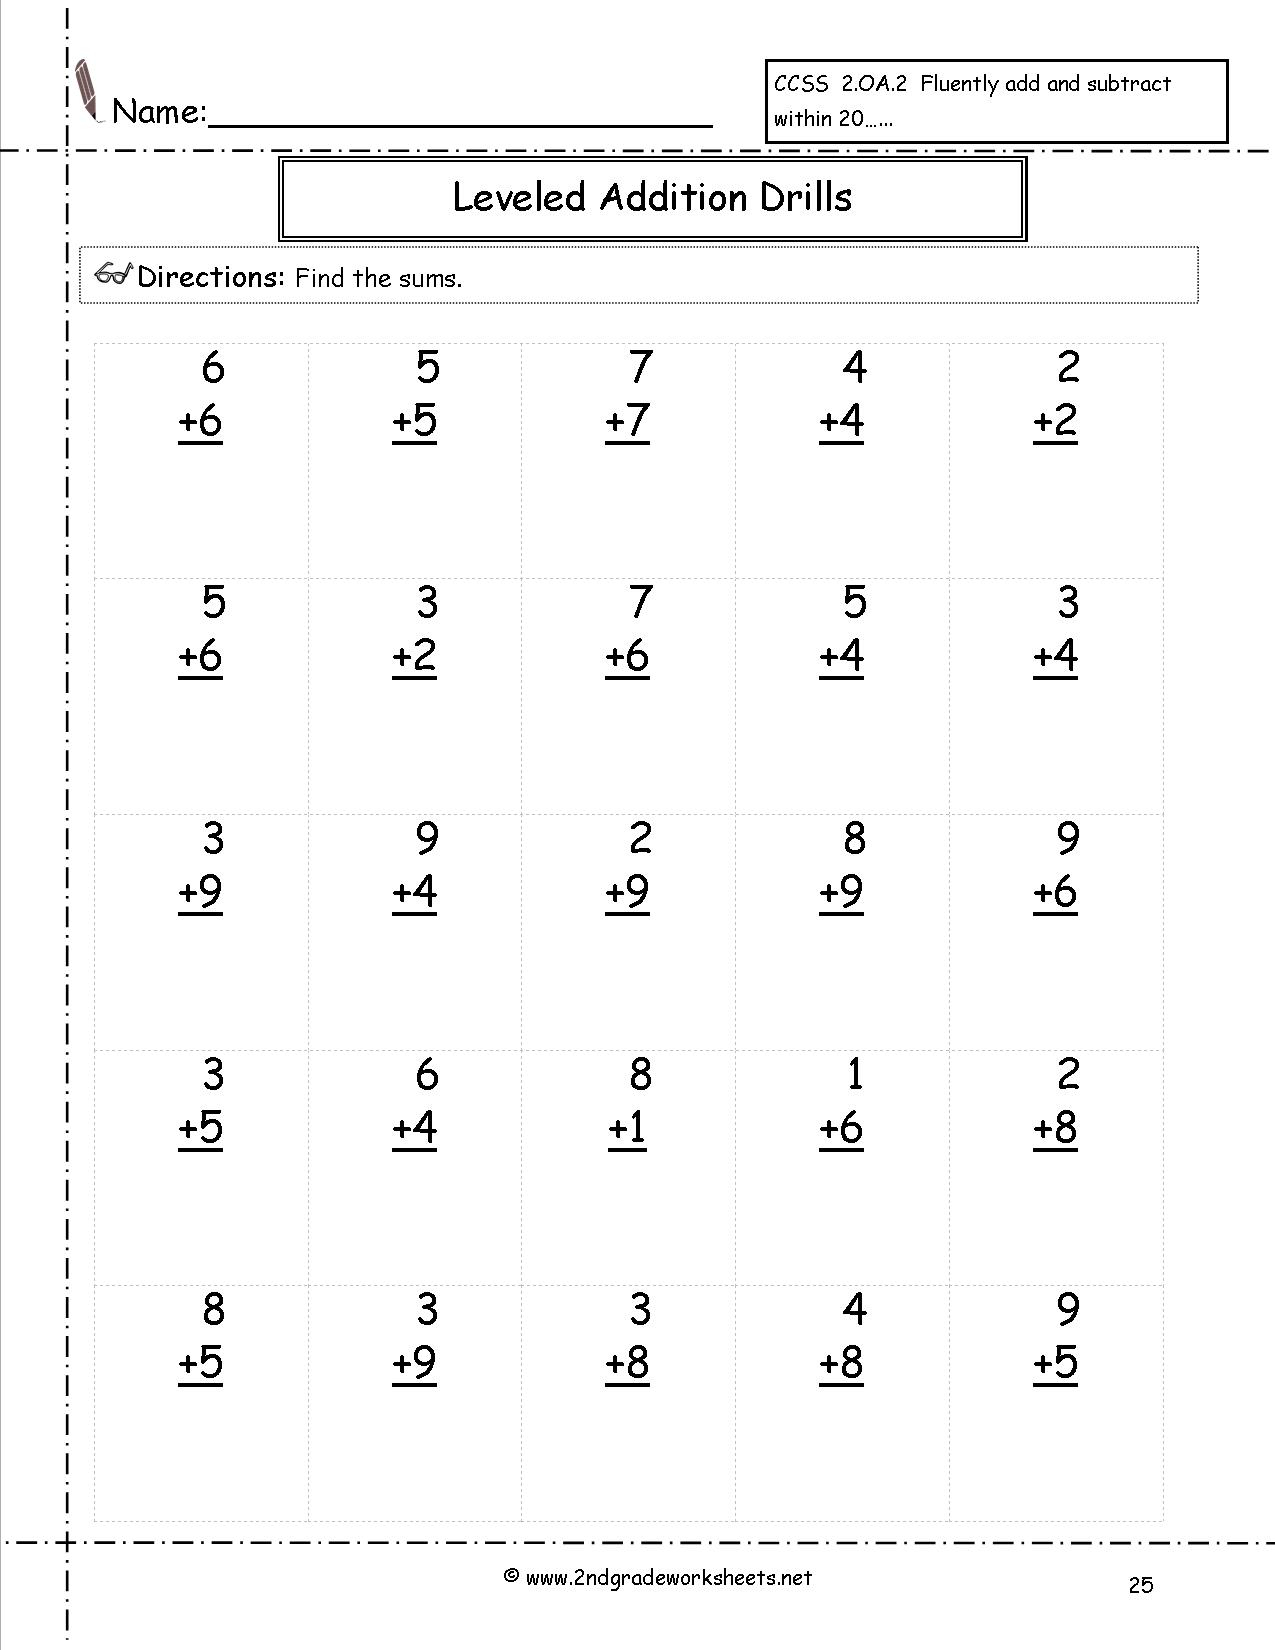 Free Math Worksheets And Printouts - Free Printable Math Worksheets Addition And Subtraction